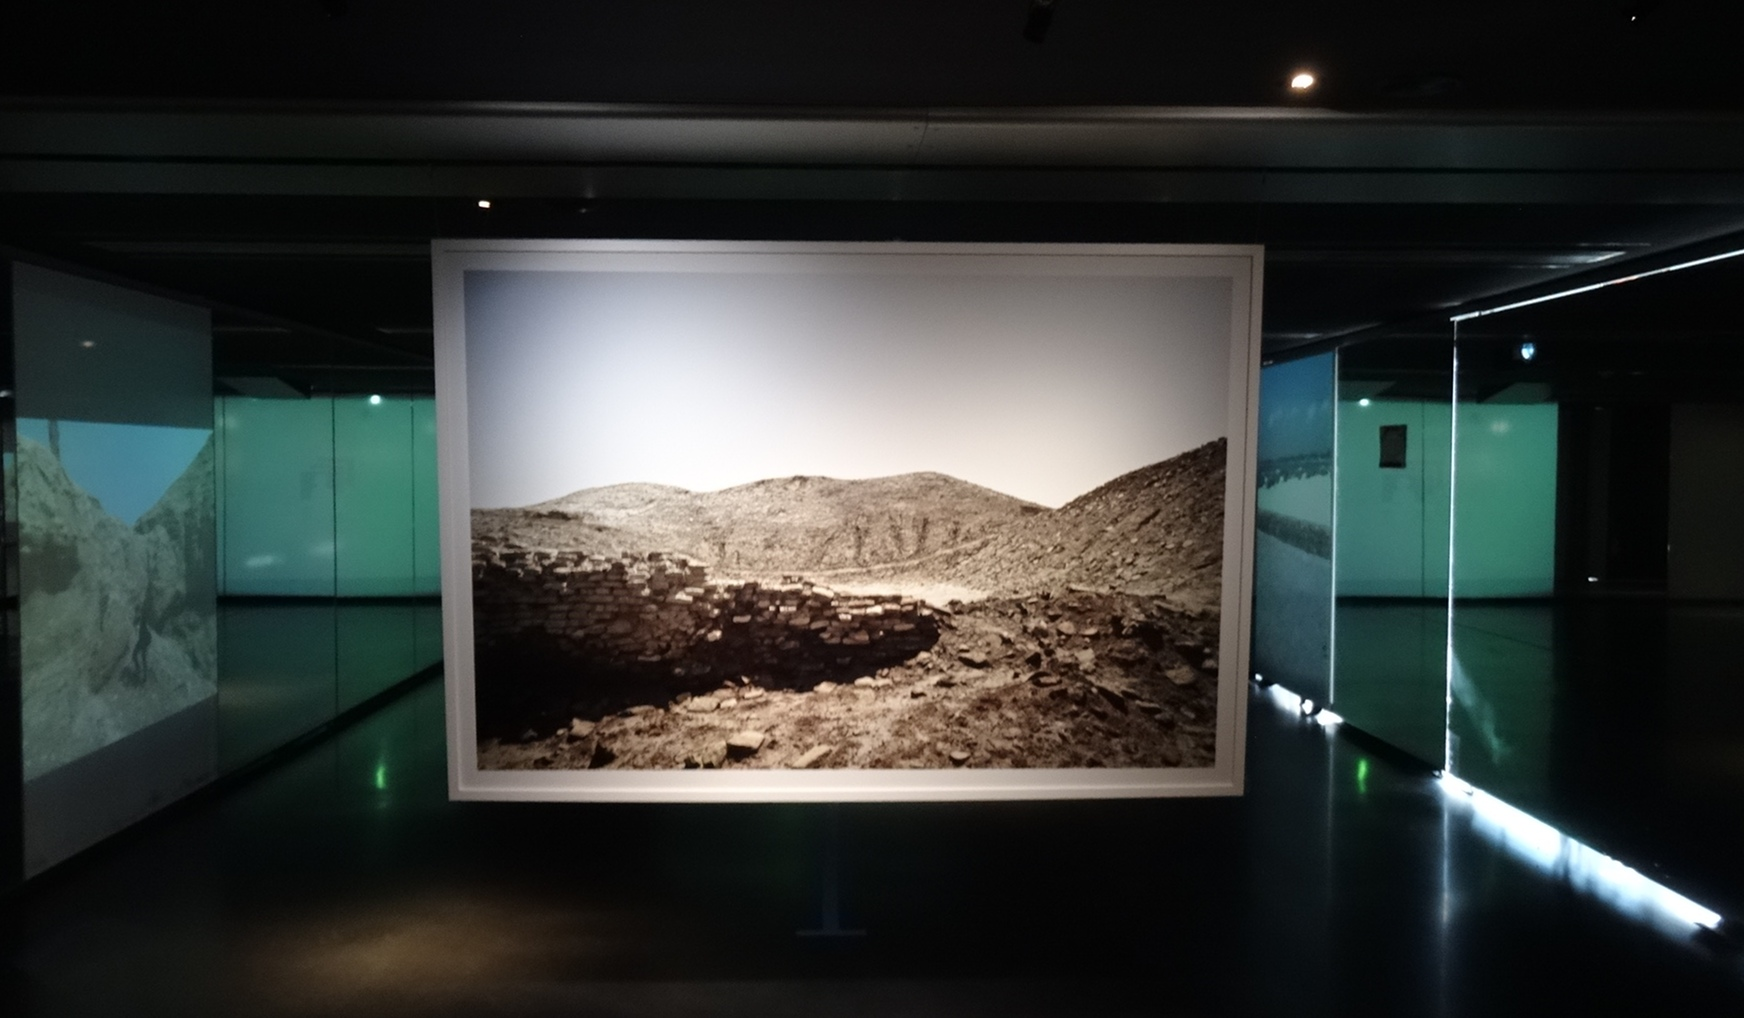 Vue de l'exposition Last water war, ruins of a future à l'Institut du monde arabe, Emeric Lhuisset, 2016.